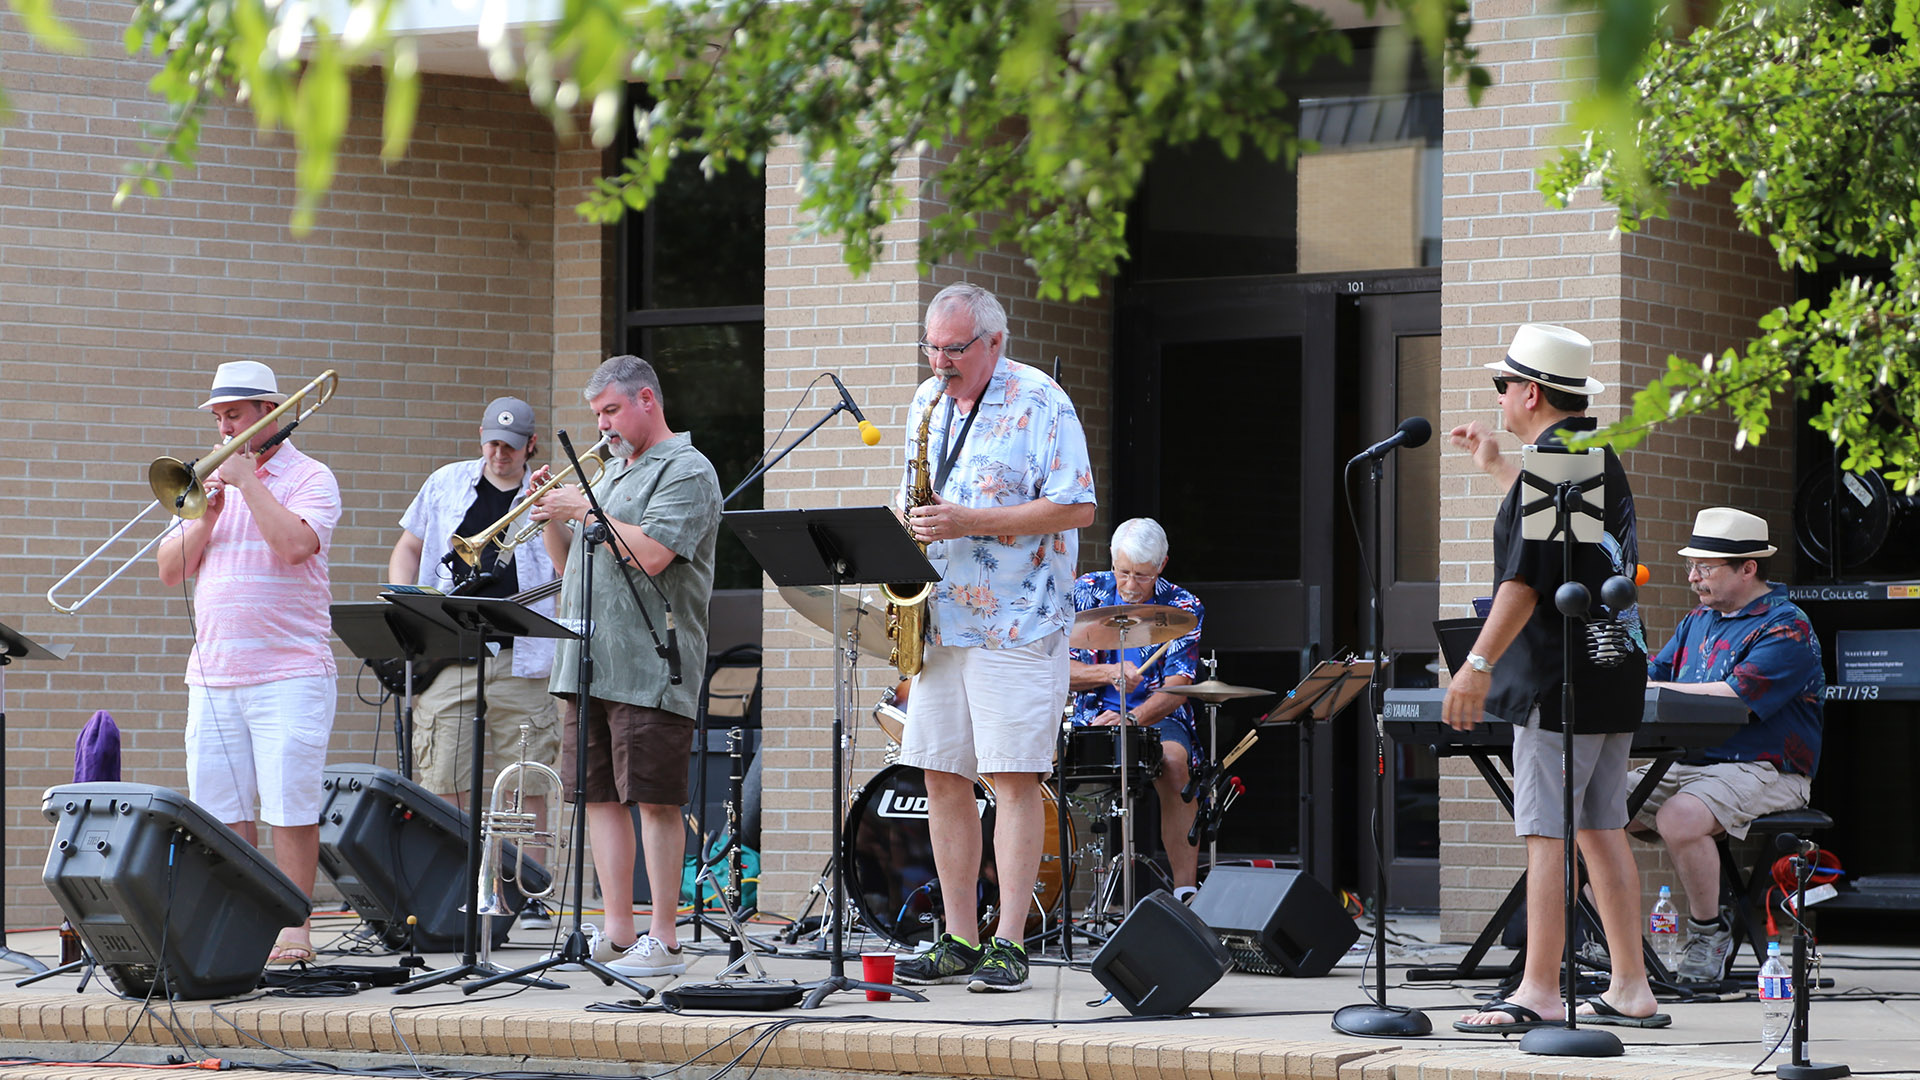 Summer Music Roundup 2018: Your guide to the season of outdoor concerts and patio music